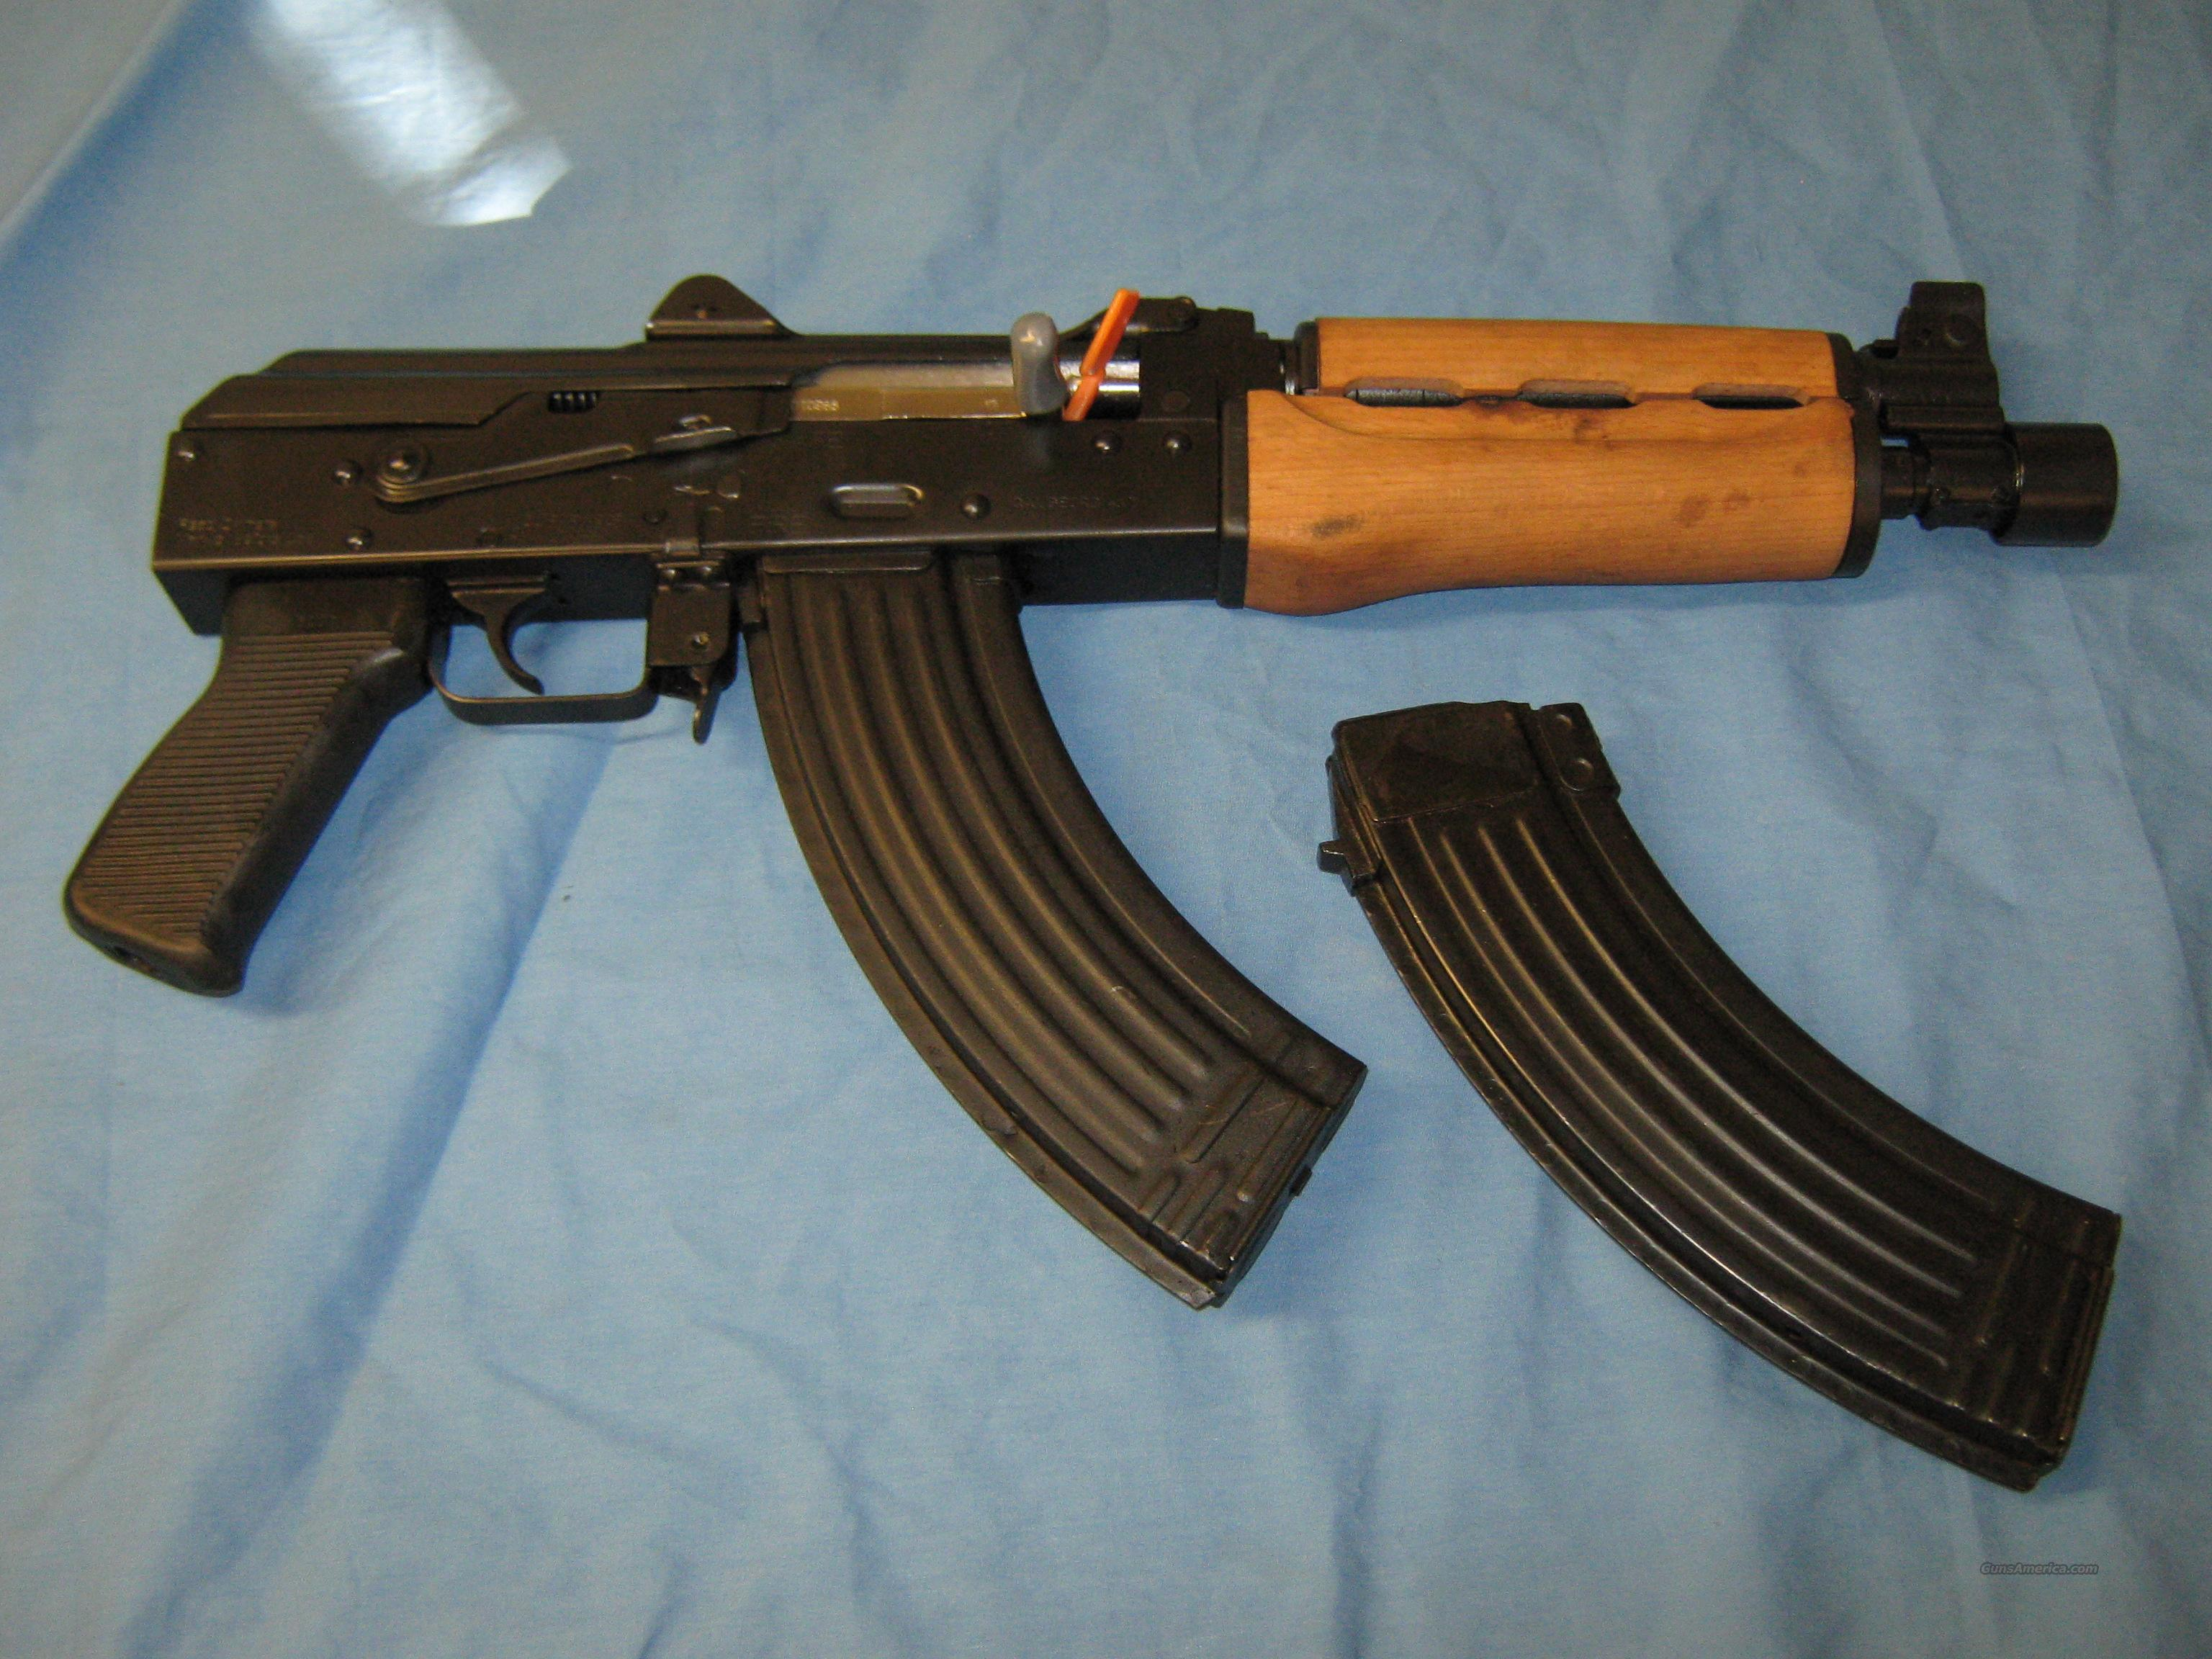 ON SALE!   ZASTAVA AK-47 M92 PAP PISTOL   Guns > Pistols > Century International Arms - Pistols > Pistols